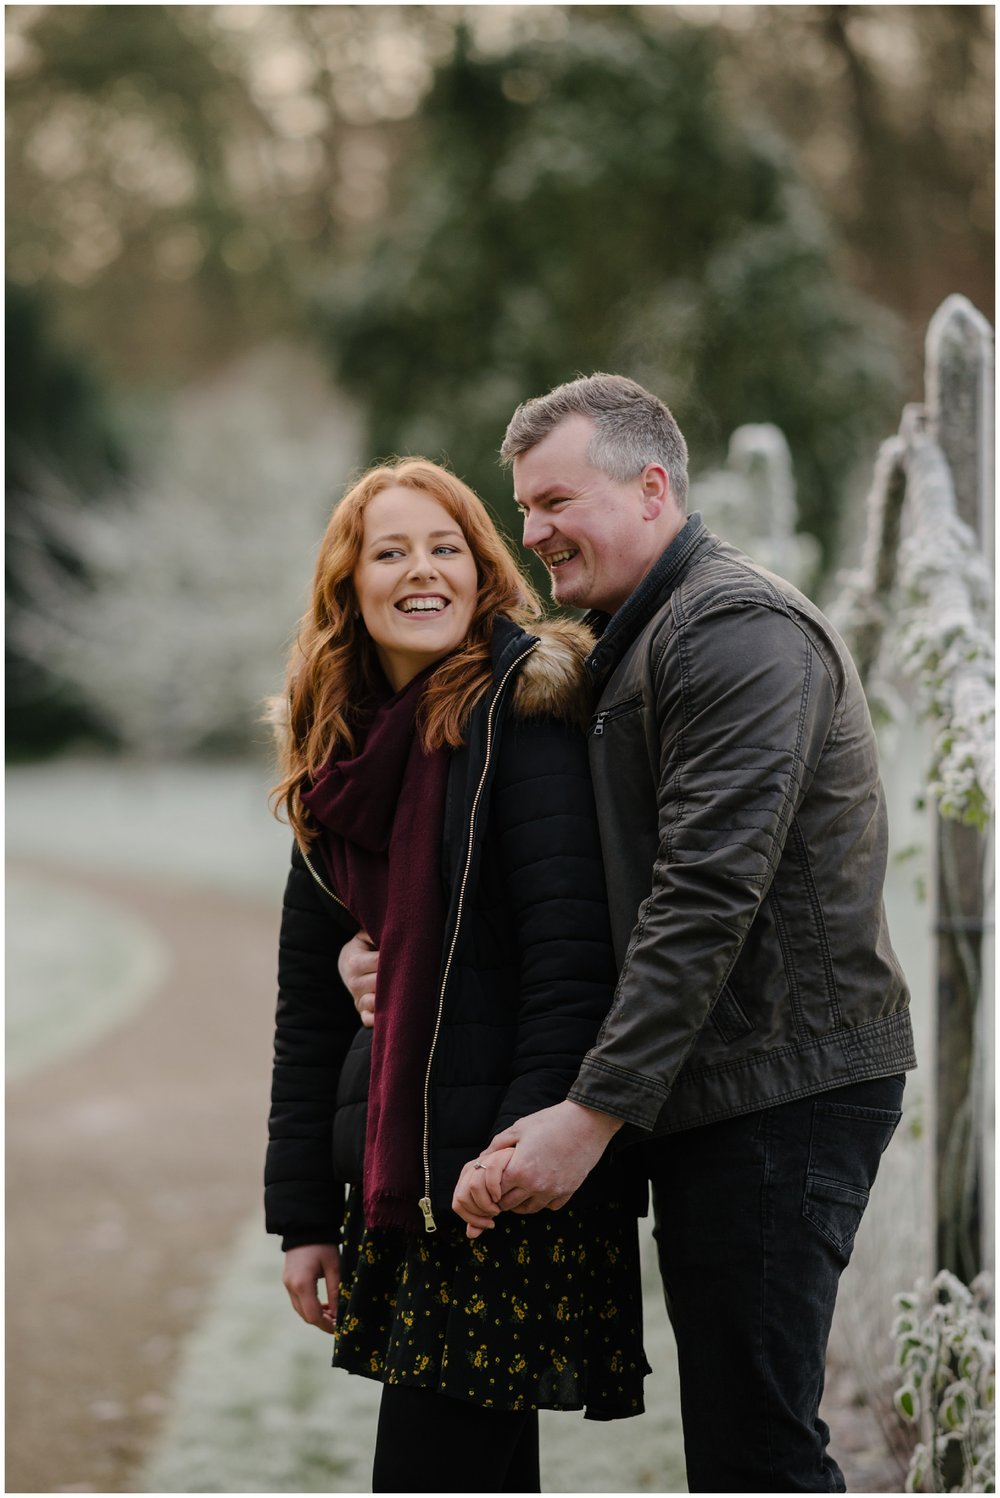 hannah_gary_fermanagh_pre_wedding_jude_browne_photography_0018.jpg